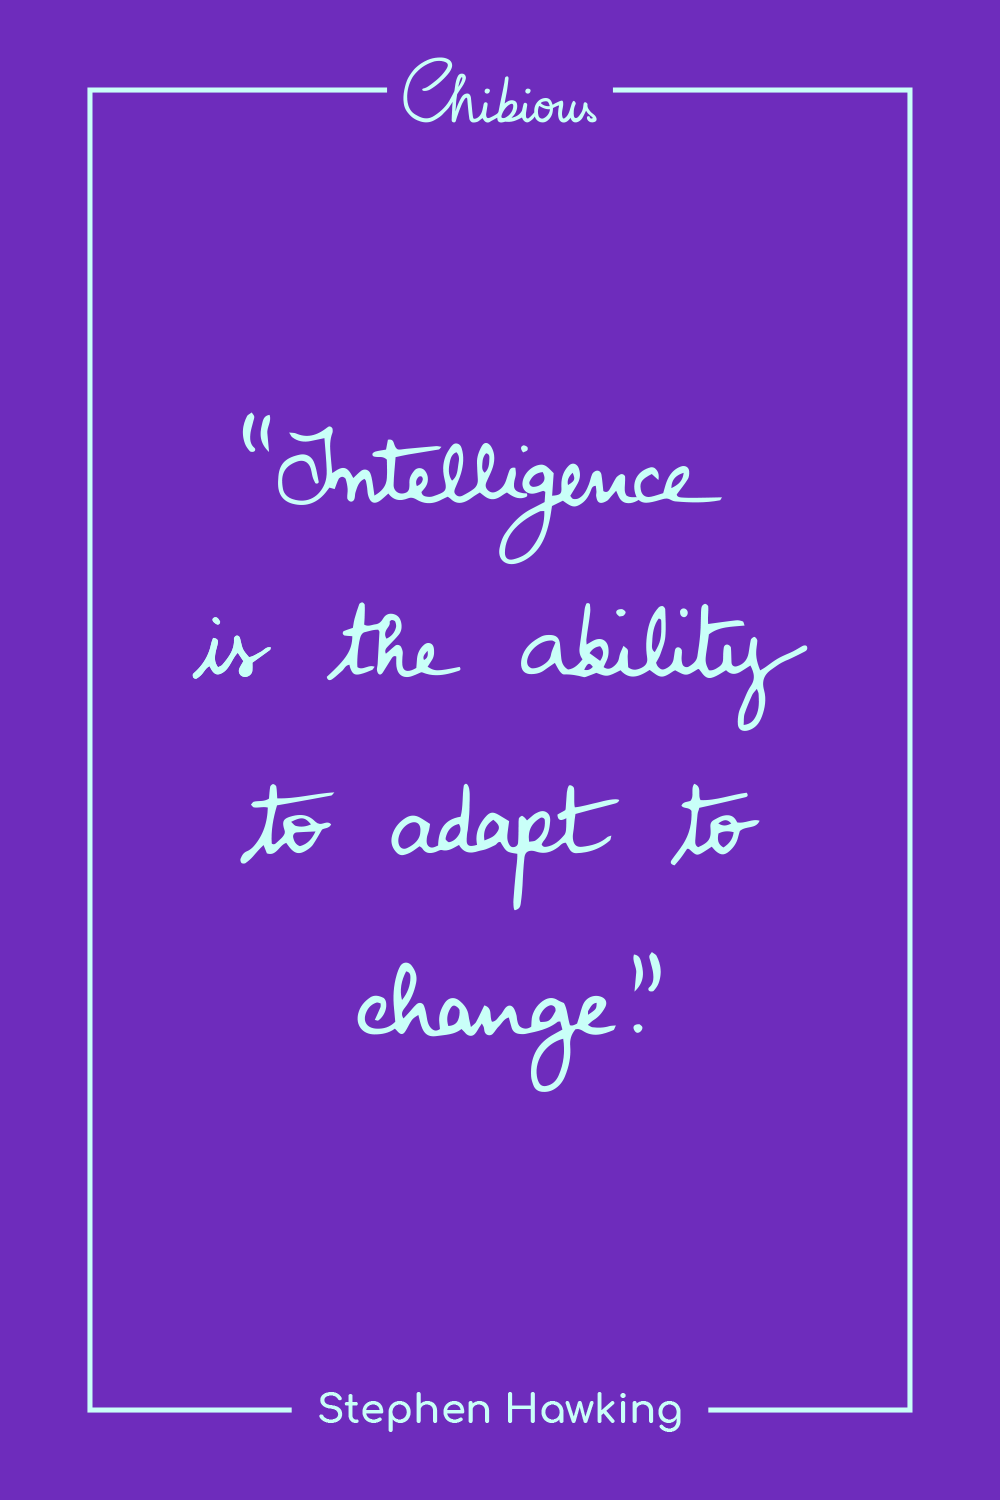 Quote By Stephen Hawking About Adapting To Change Inspirational Quotes Adaptation Quote Change Quotes